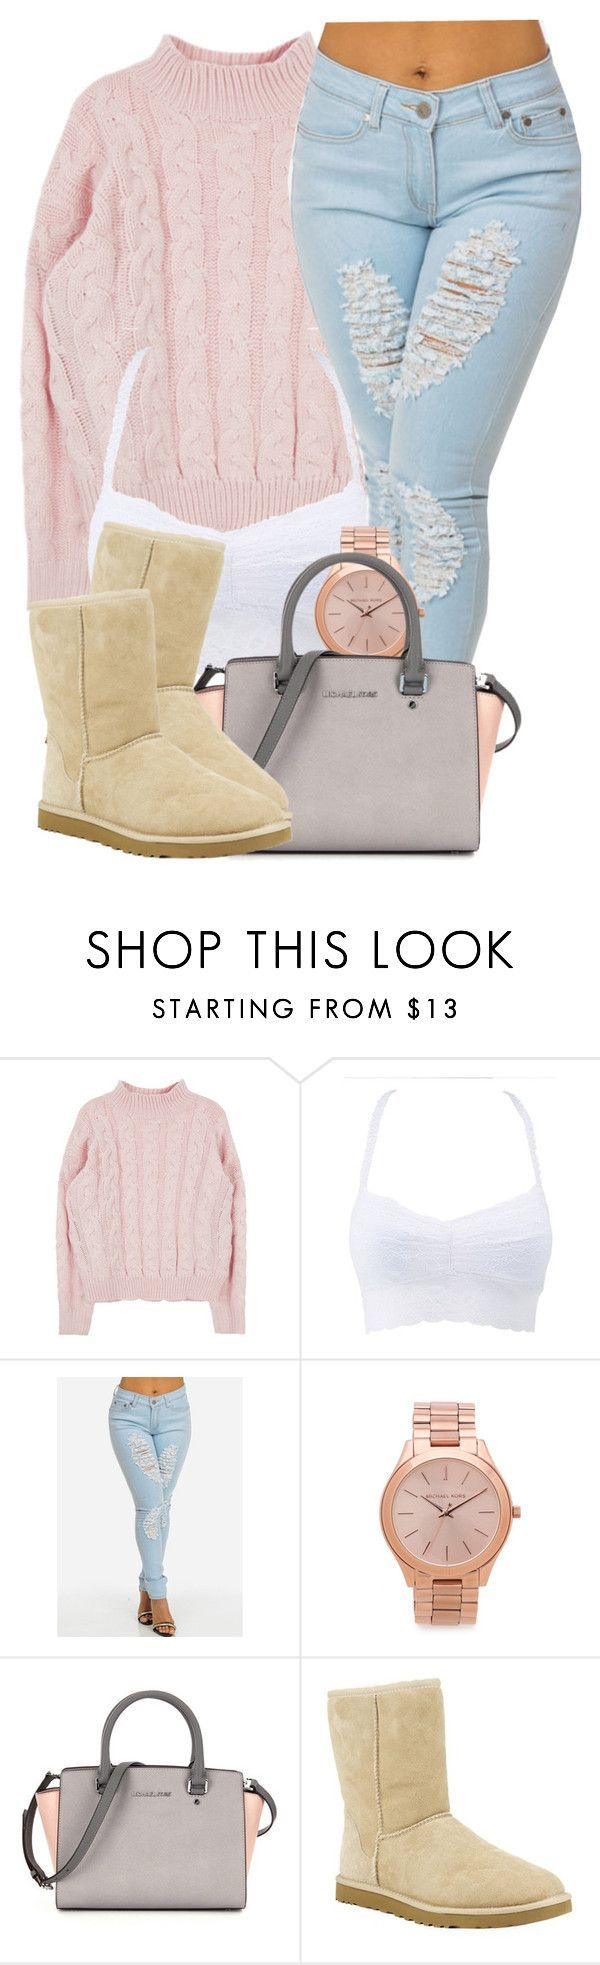 2|2|16 by miizz-starburst ❤ liked on Polyvore featuring Charlotte Russe, Michael Kors, UGG Australia, womens clothing, women, female, woman, misses and juniors